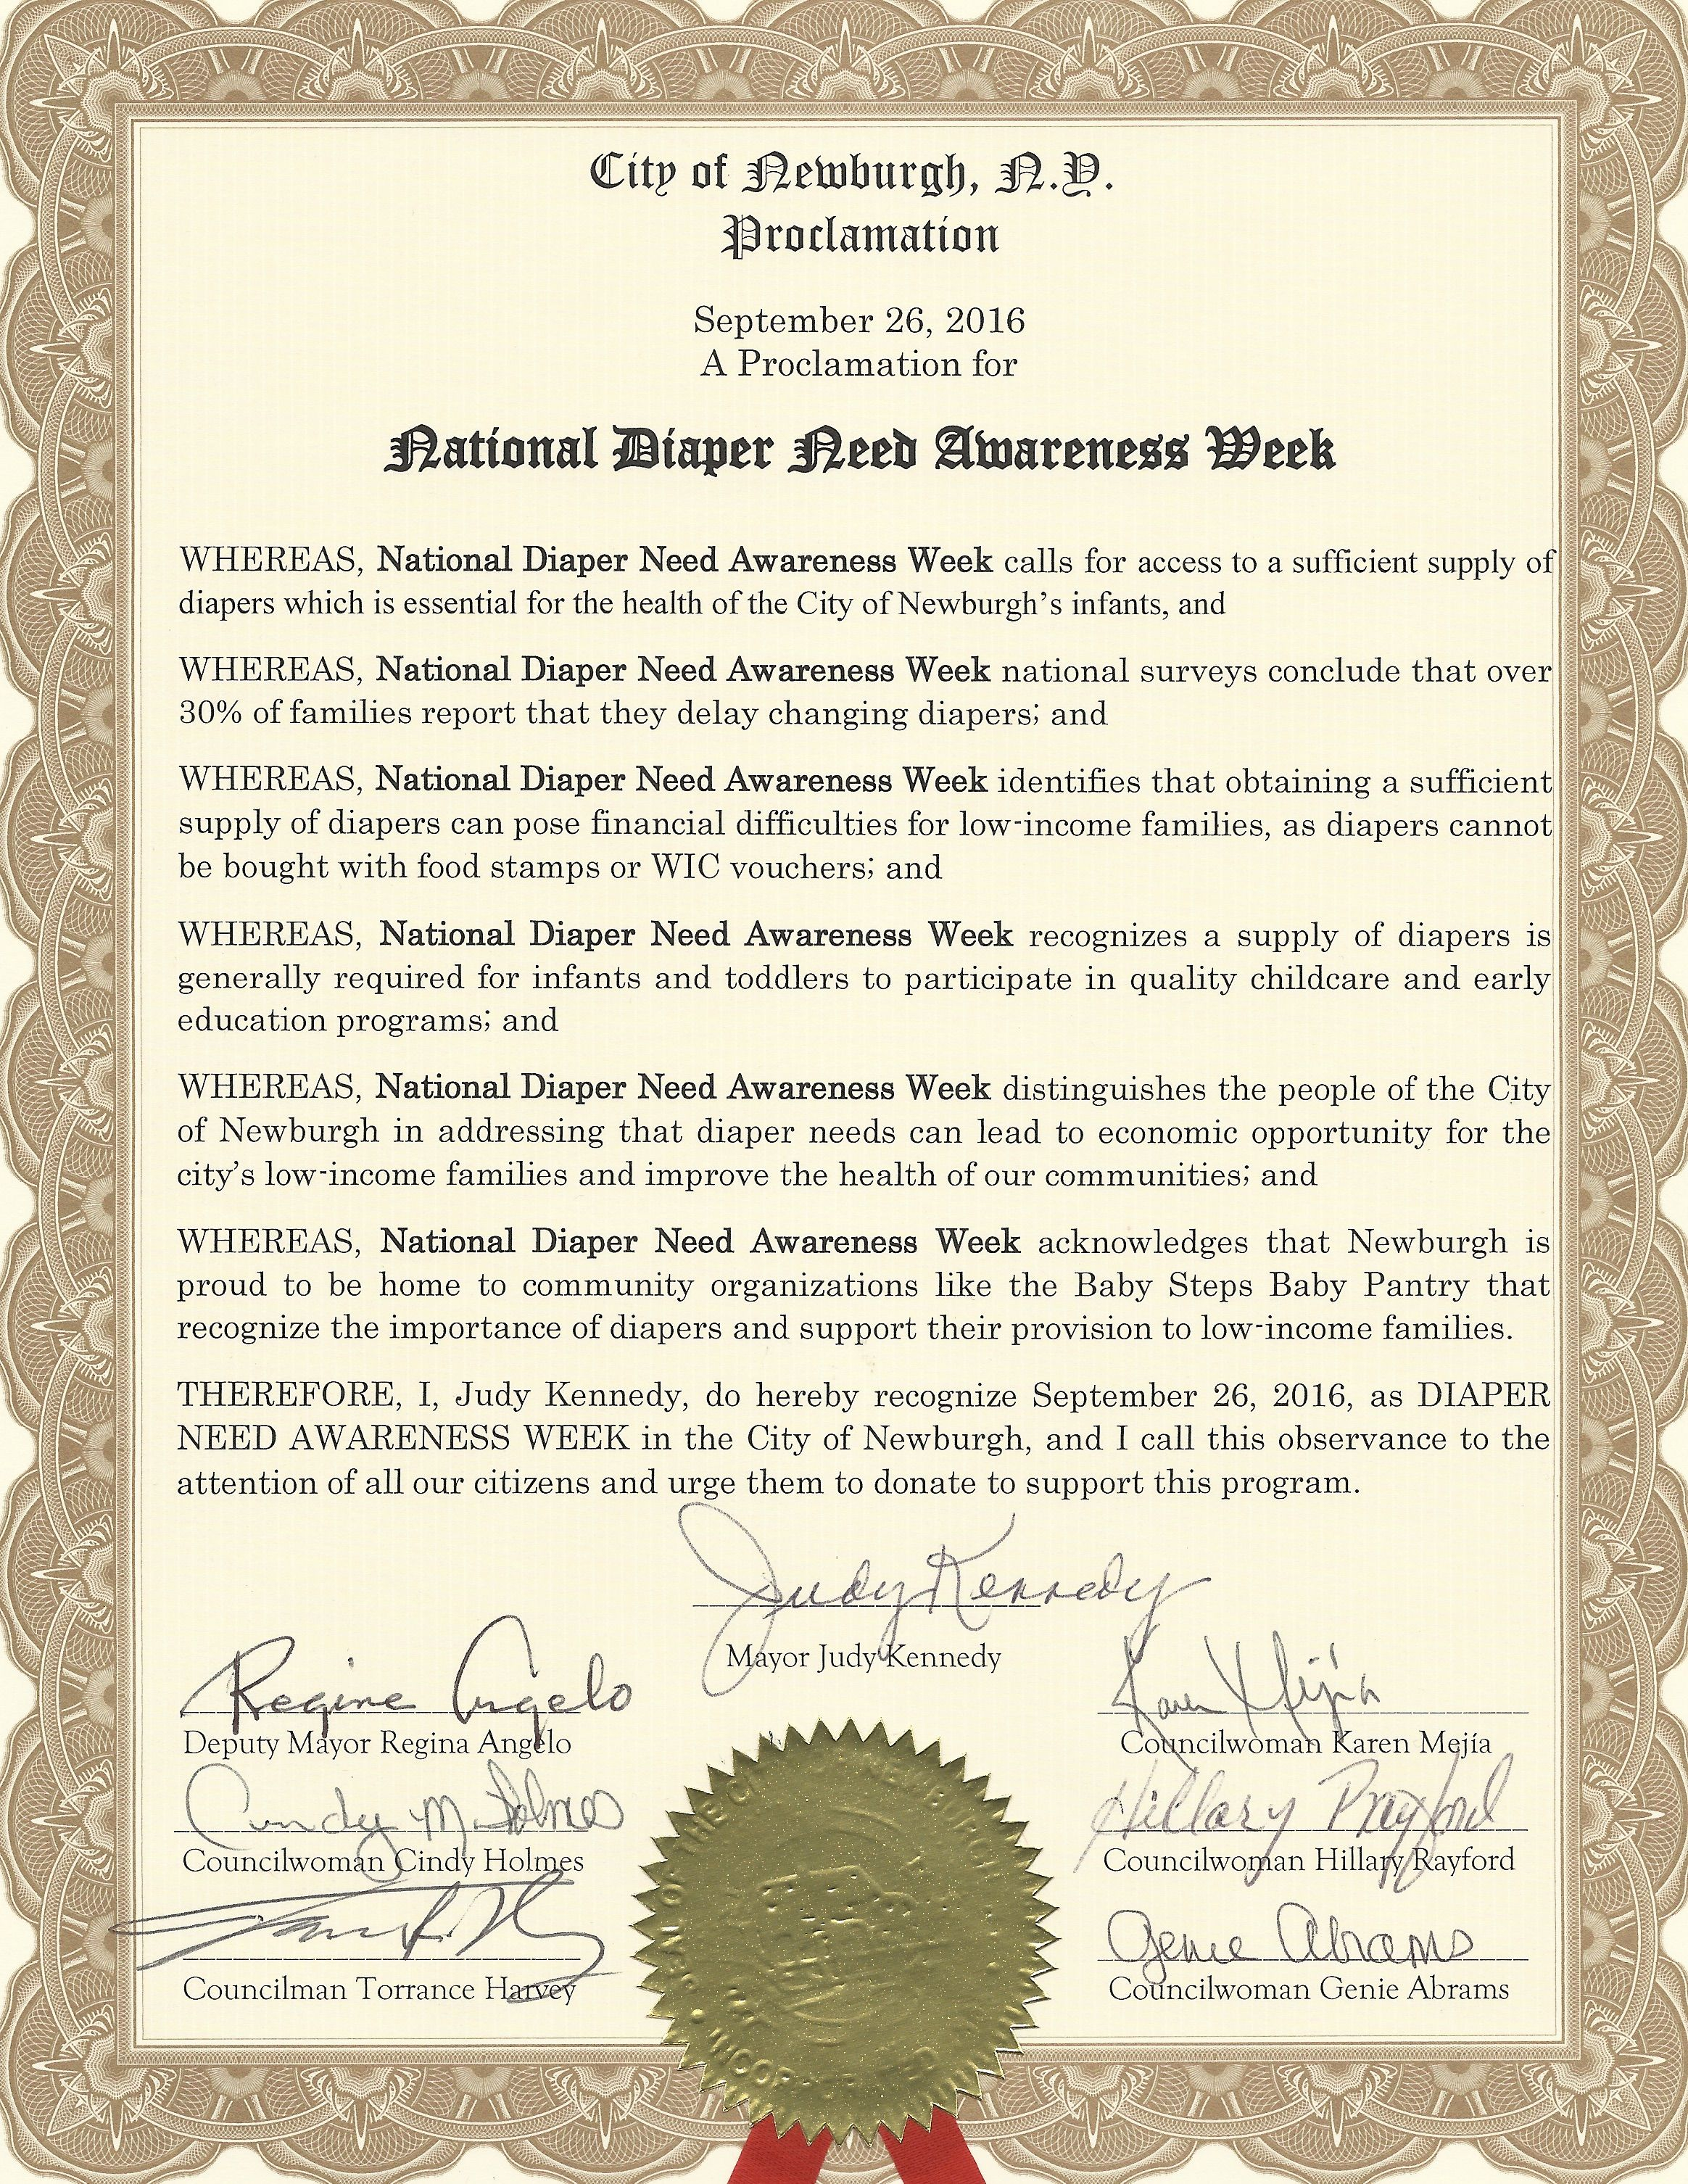 NEWBURGH, NY-Mayoral proclamation recognizing Diaper Need Awareness Week (Sep. 26-Oct. 2, 2016) #DiaperNeed Diaperneed.org